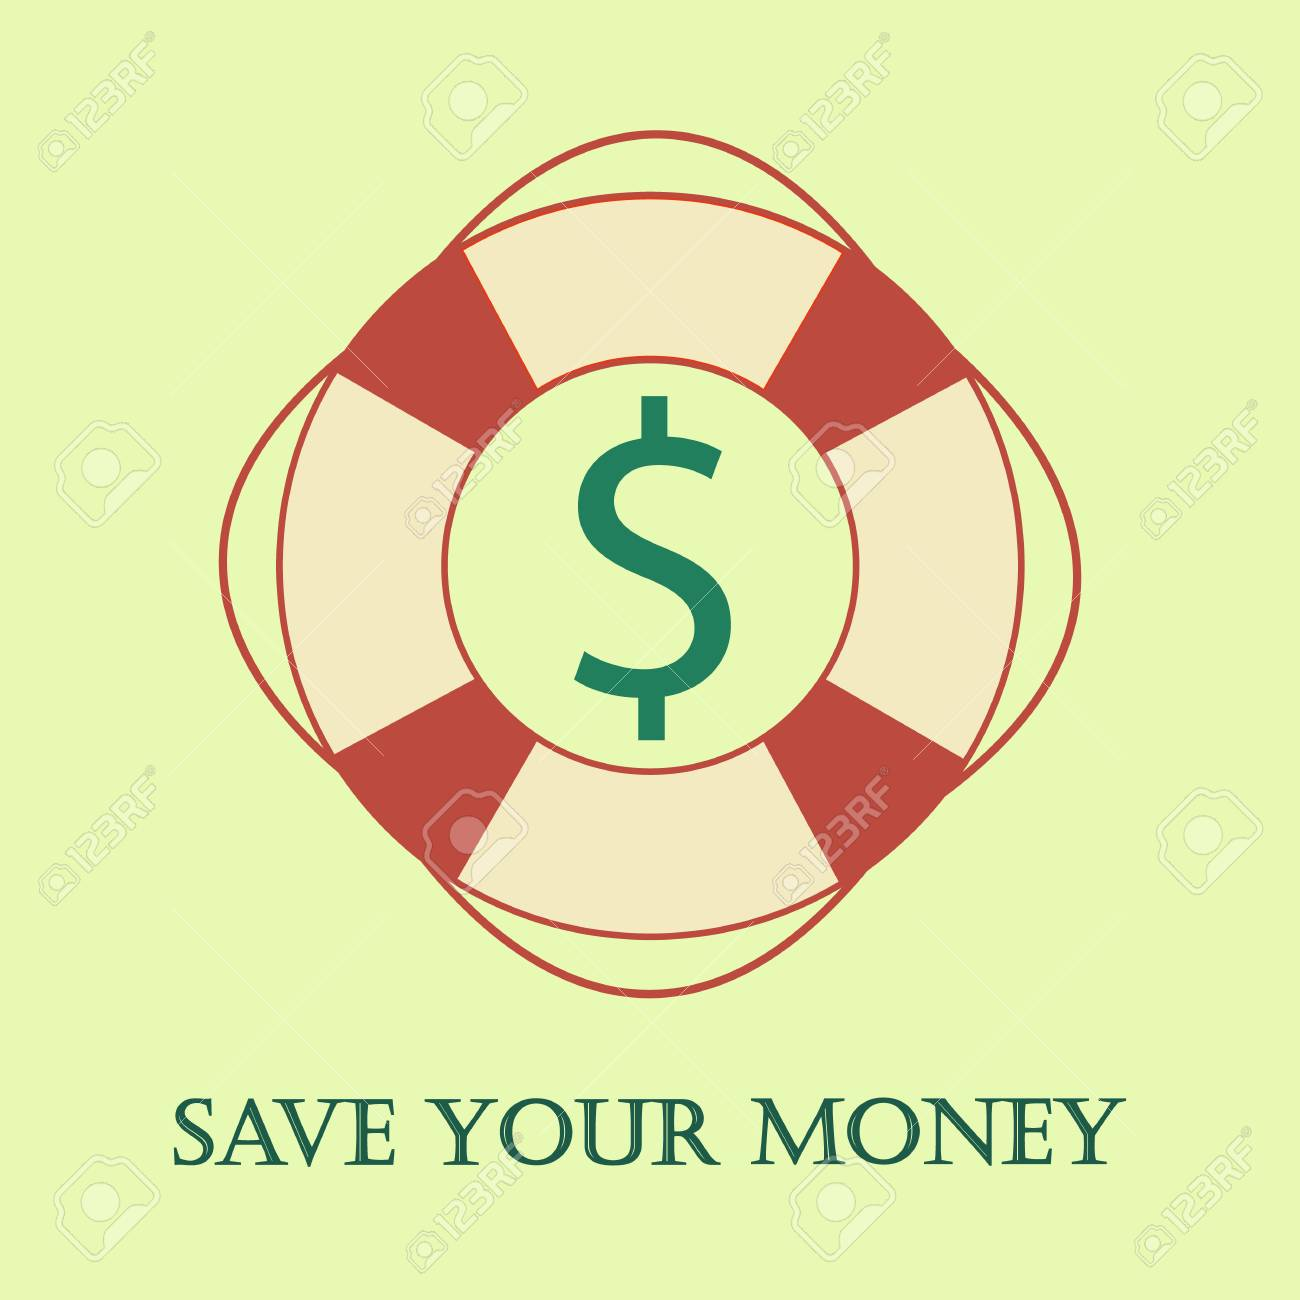 Safety ring with dollar inside  Metaphor of save your money idea